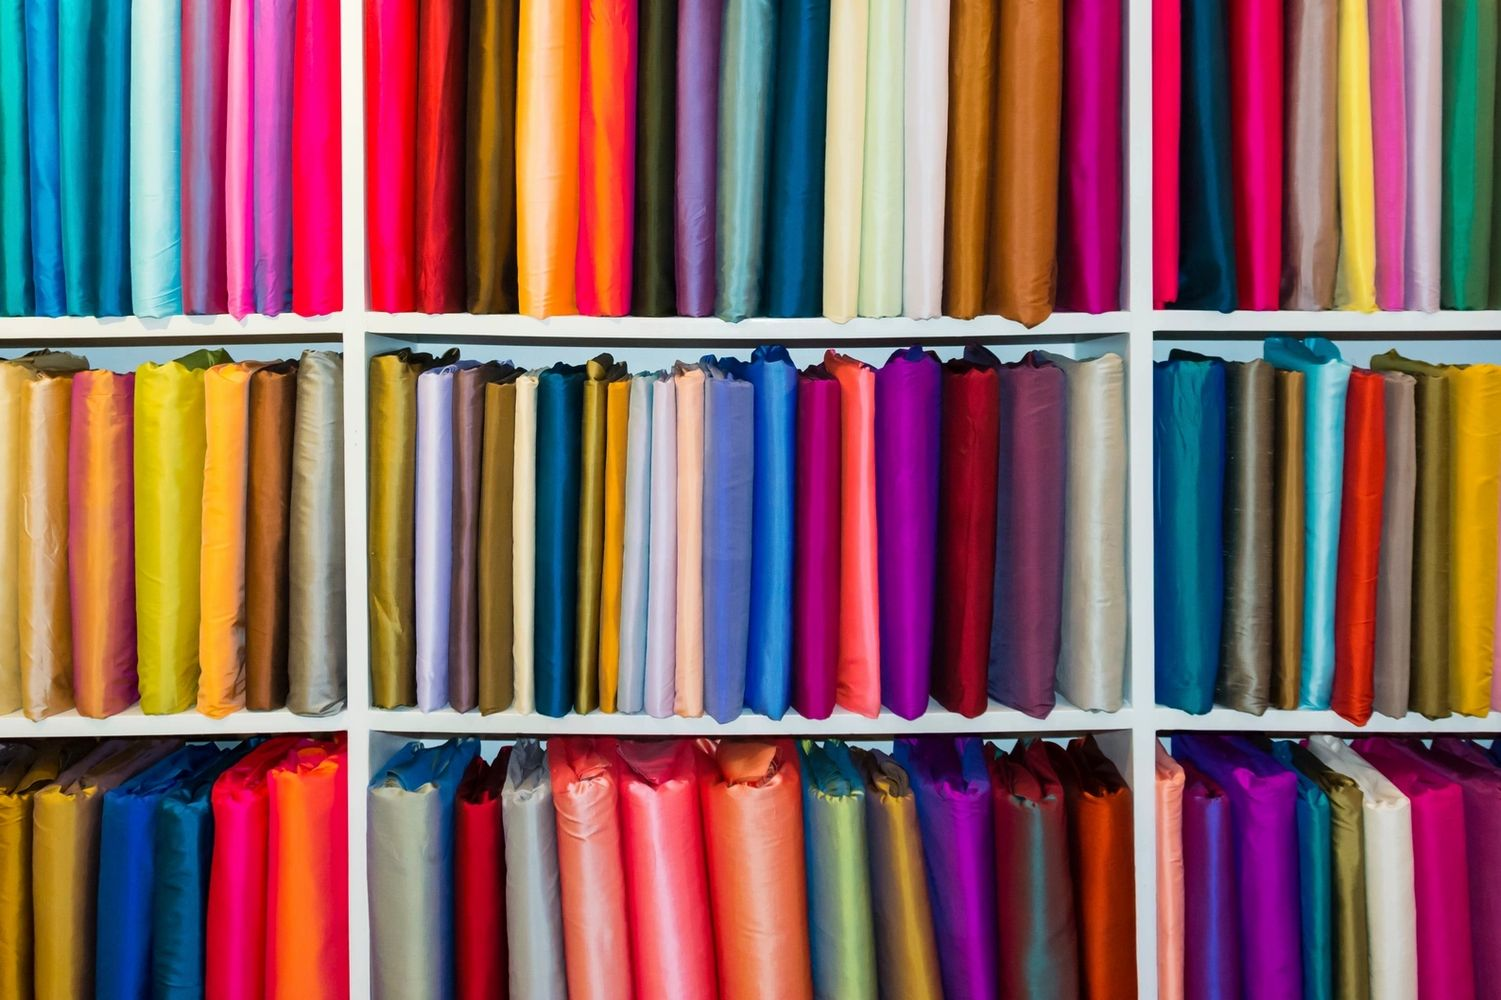 Fabric, cloth, colour, sheets, batts